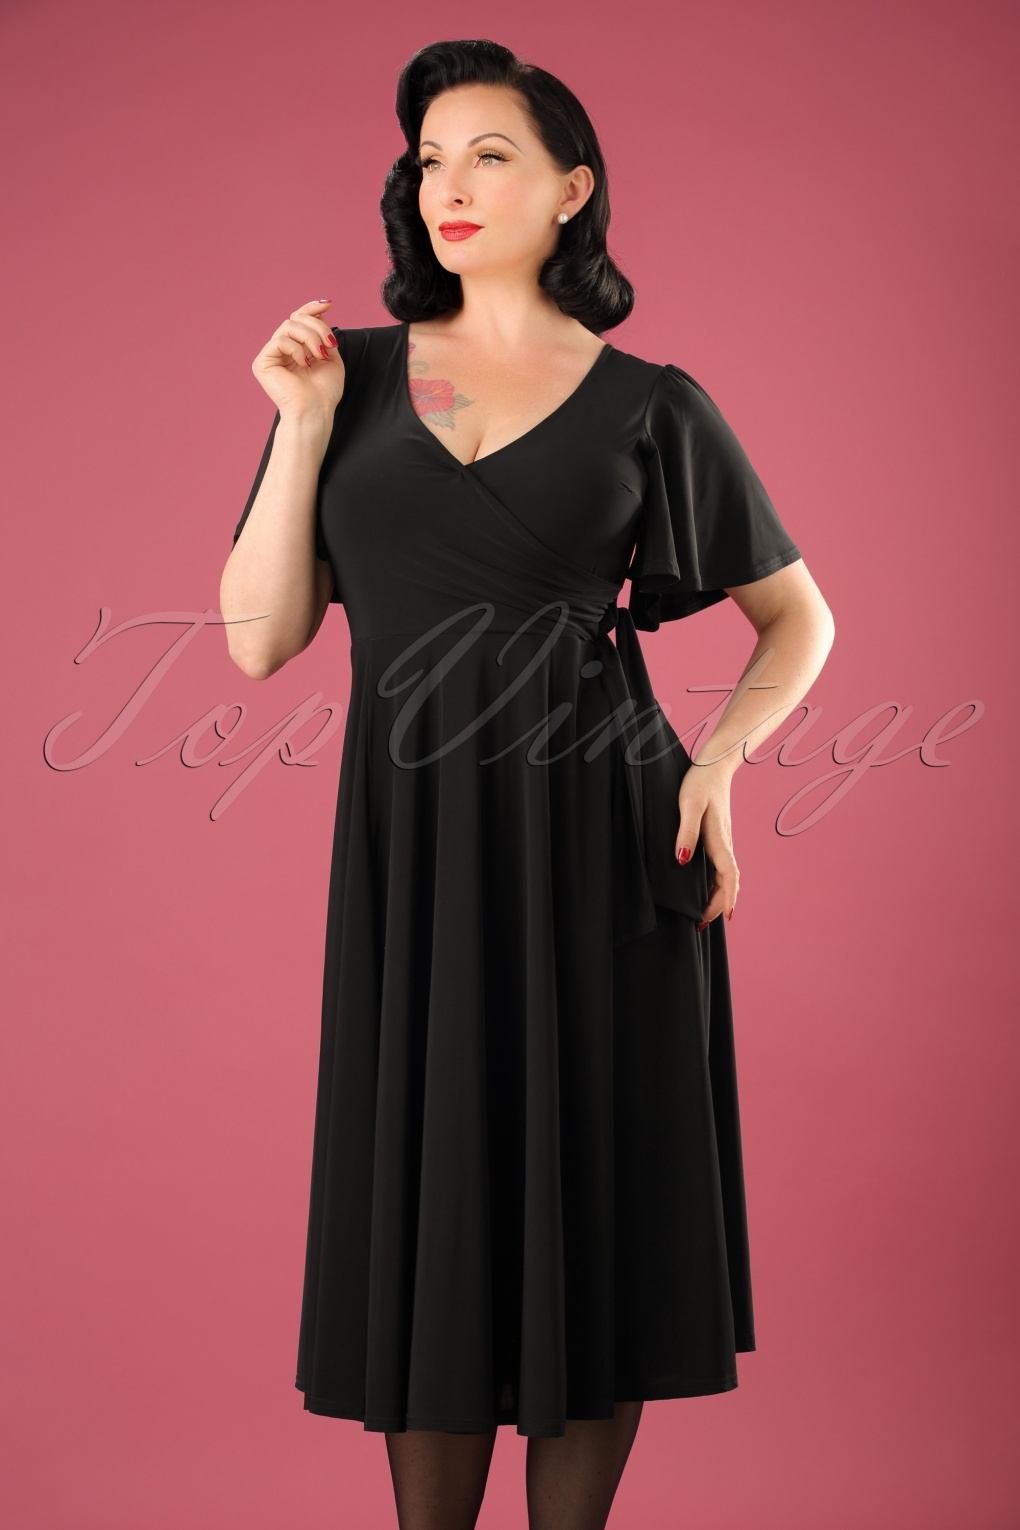 1940s Evening, Prom, Party, Cocktail Dresses & Ball Gowns 40s Lara Cross Over Swing Dress in Black £52.91 AT vintagedancer.com